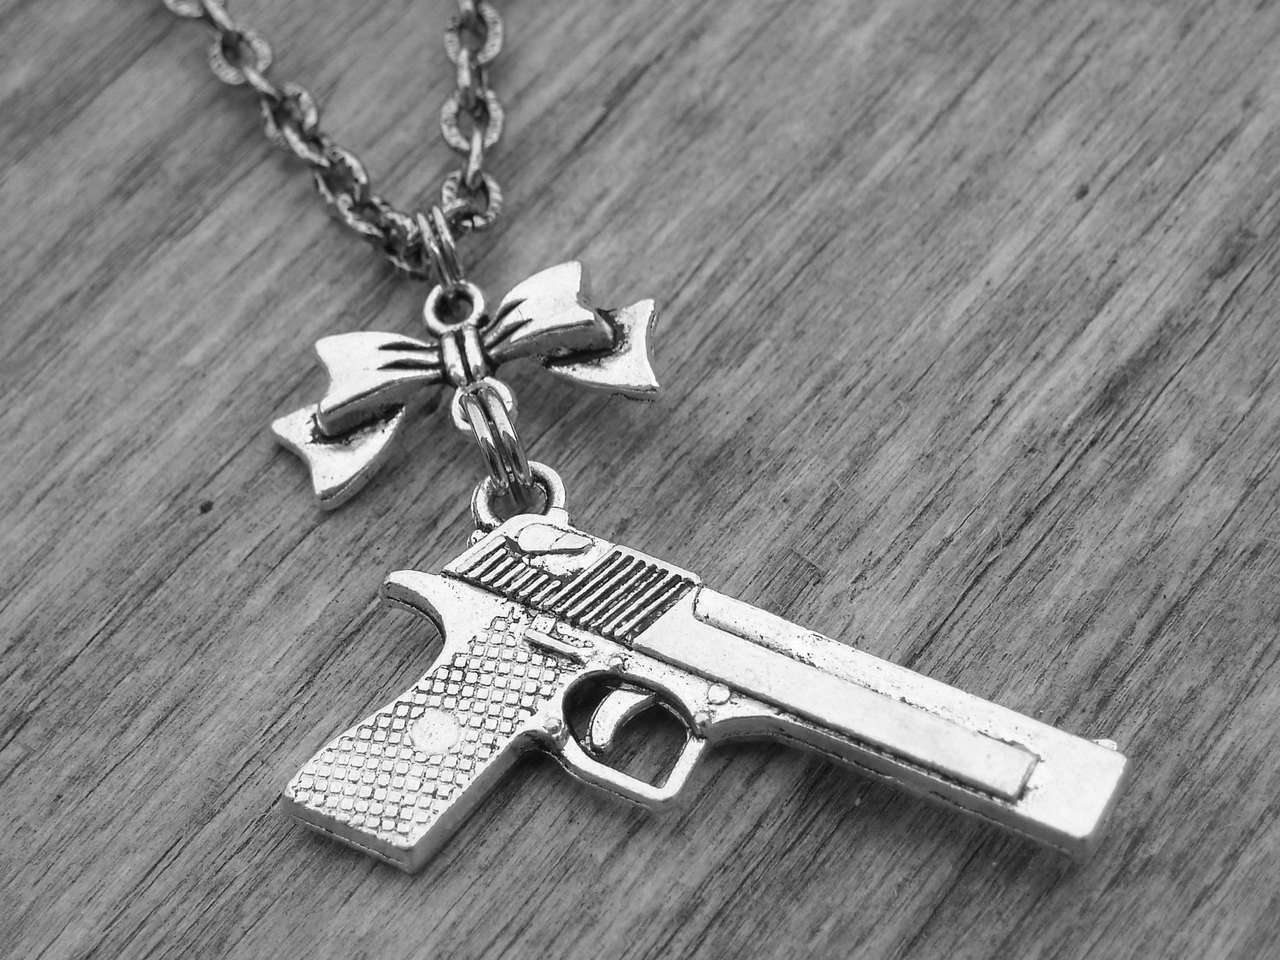 bow, bows, cowgirl, cute, gun, guns, handgun, heavy metal, hunter, hunting, jewelry, metal, necklace, pistol, punk, punk rock, revolver, rock, rock and roll, rock n roll, rocker, shotgun, silver